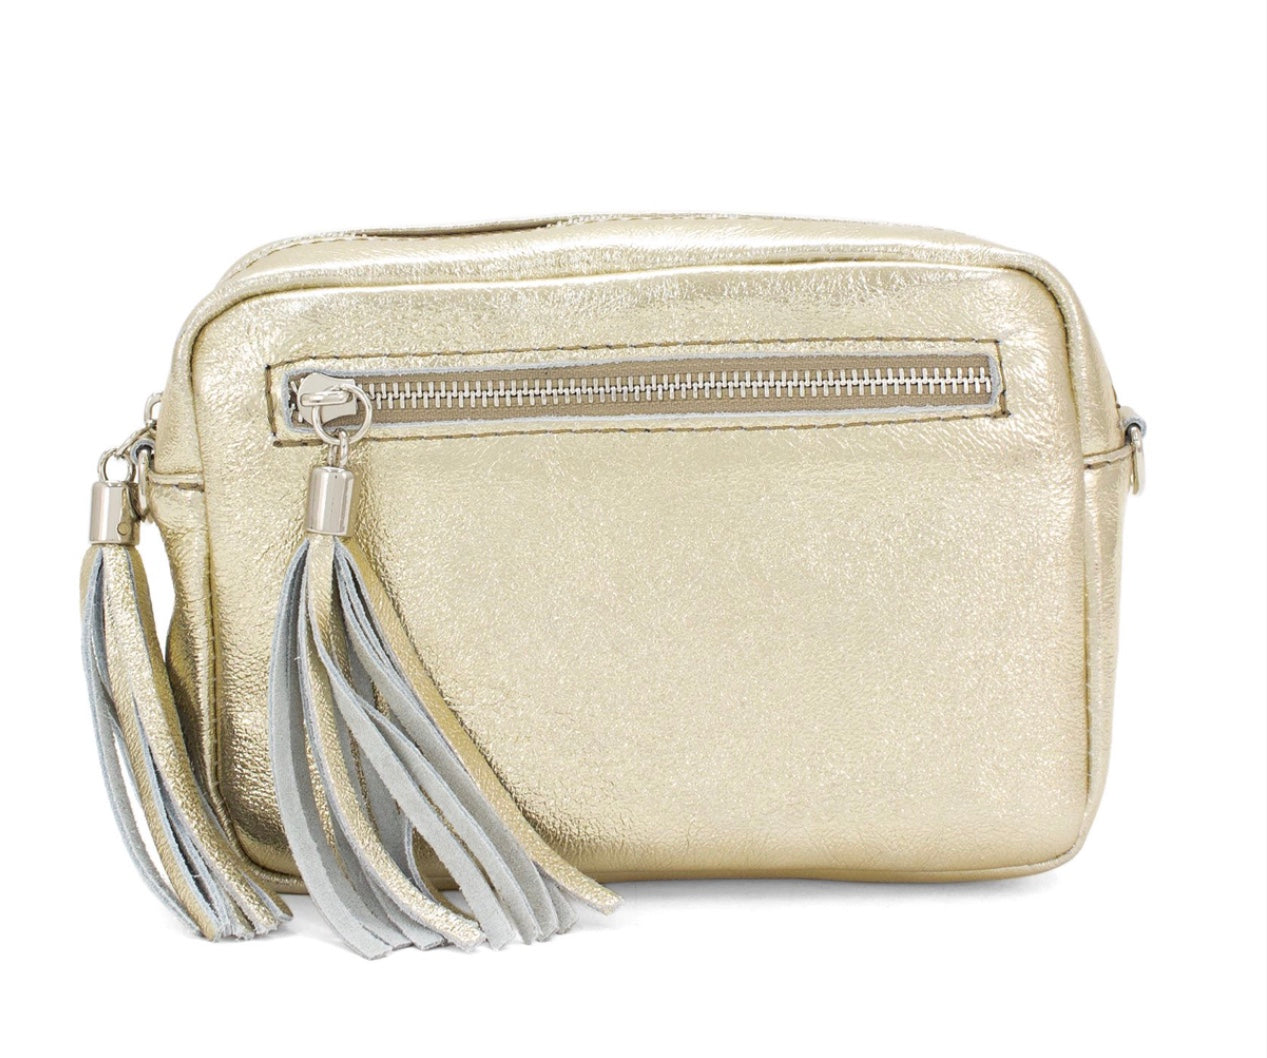 Metallic gold cross body bag